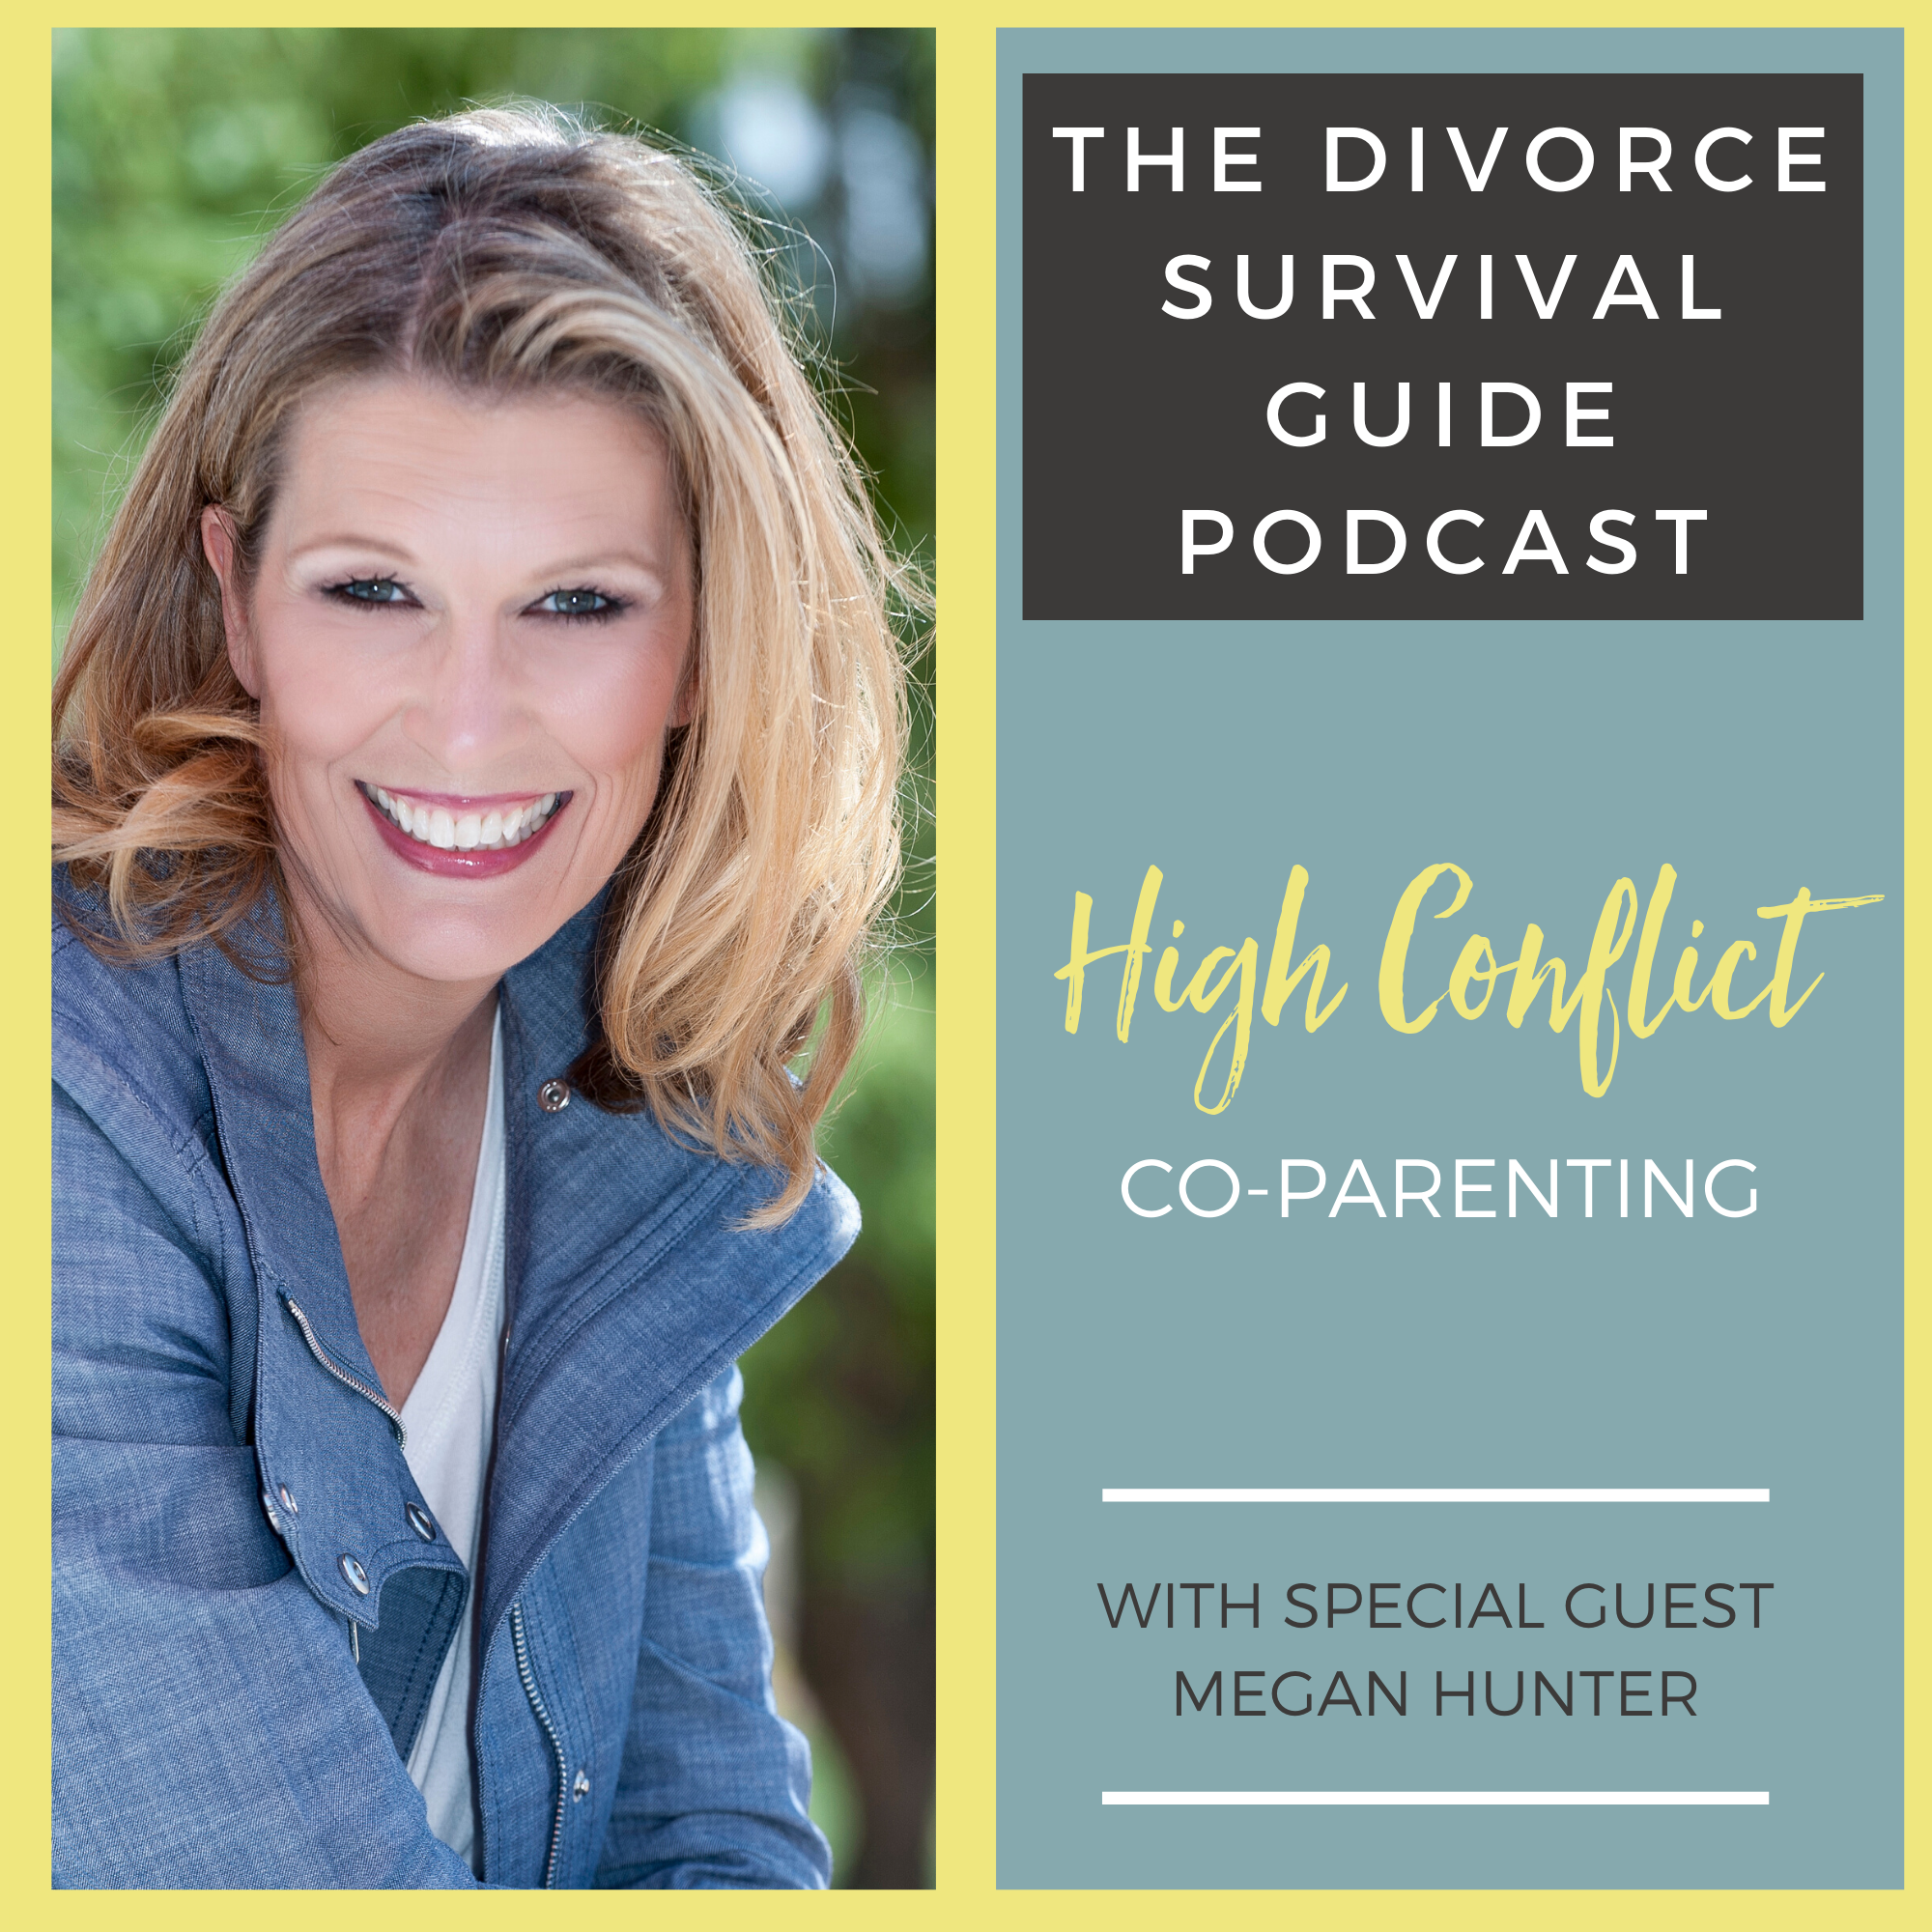 The Divorce Survival Guide Podcast - High-Conflict Co-Parenting with Megan Hunter